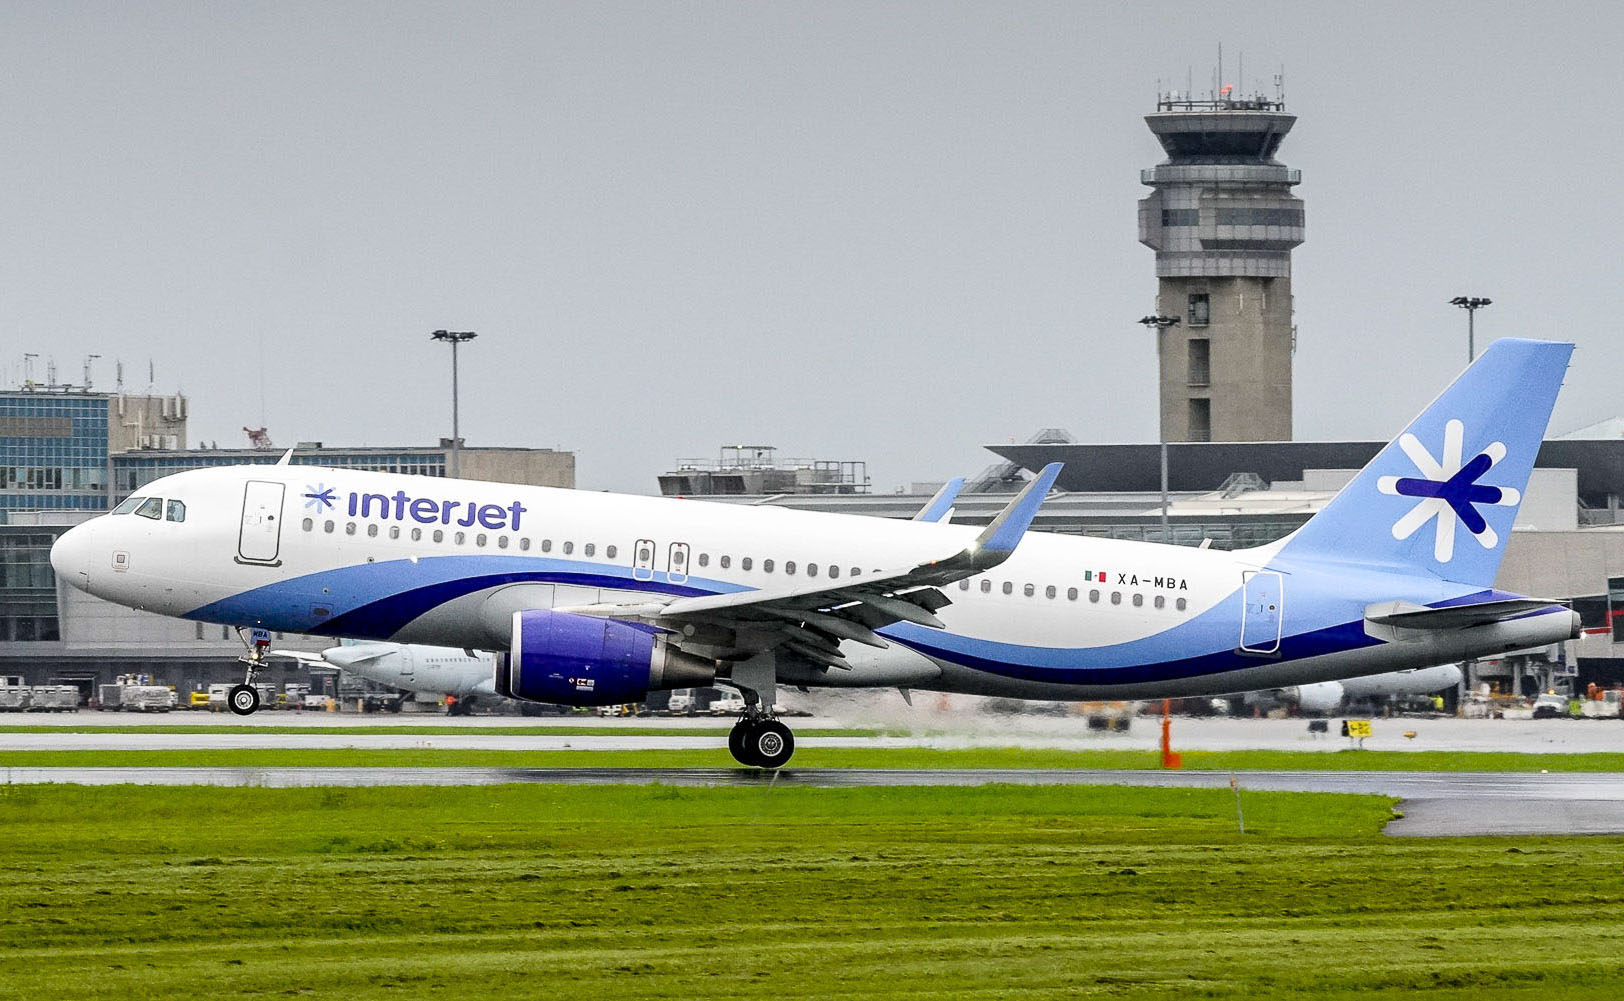 Interjet Launches New Service to Mexico City and Cancun from Toronto